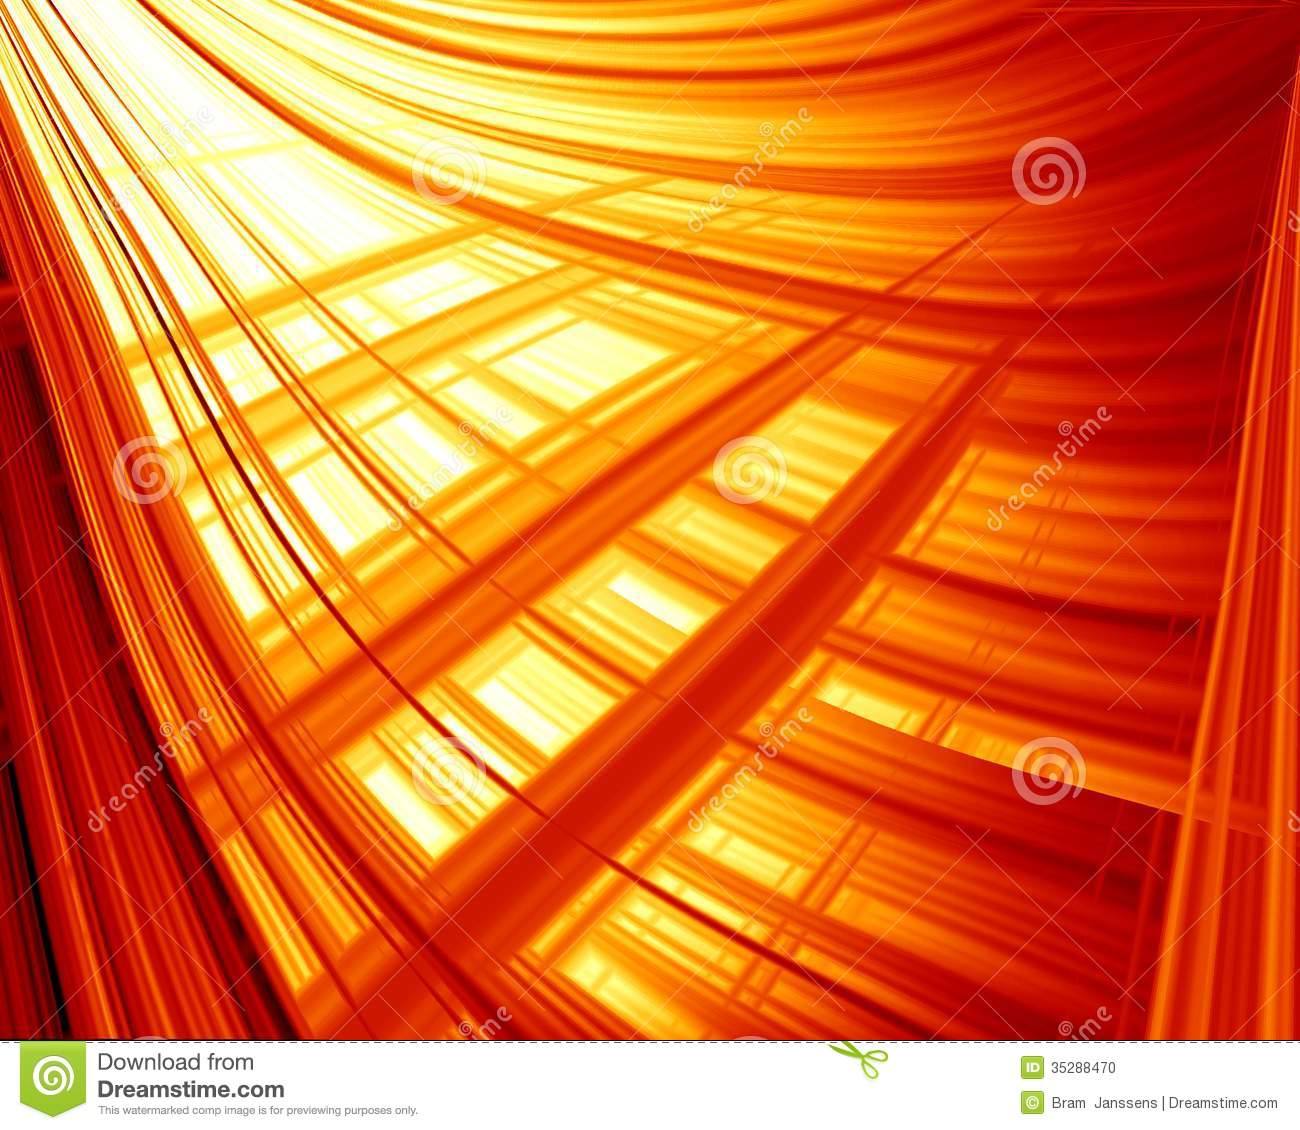 Orange background stock illustration. Illustration of ...